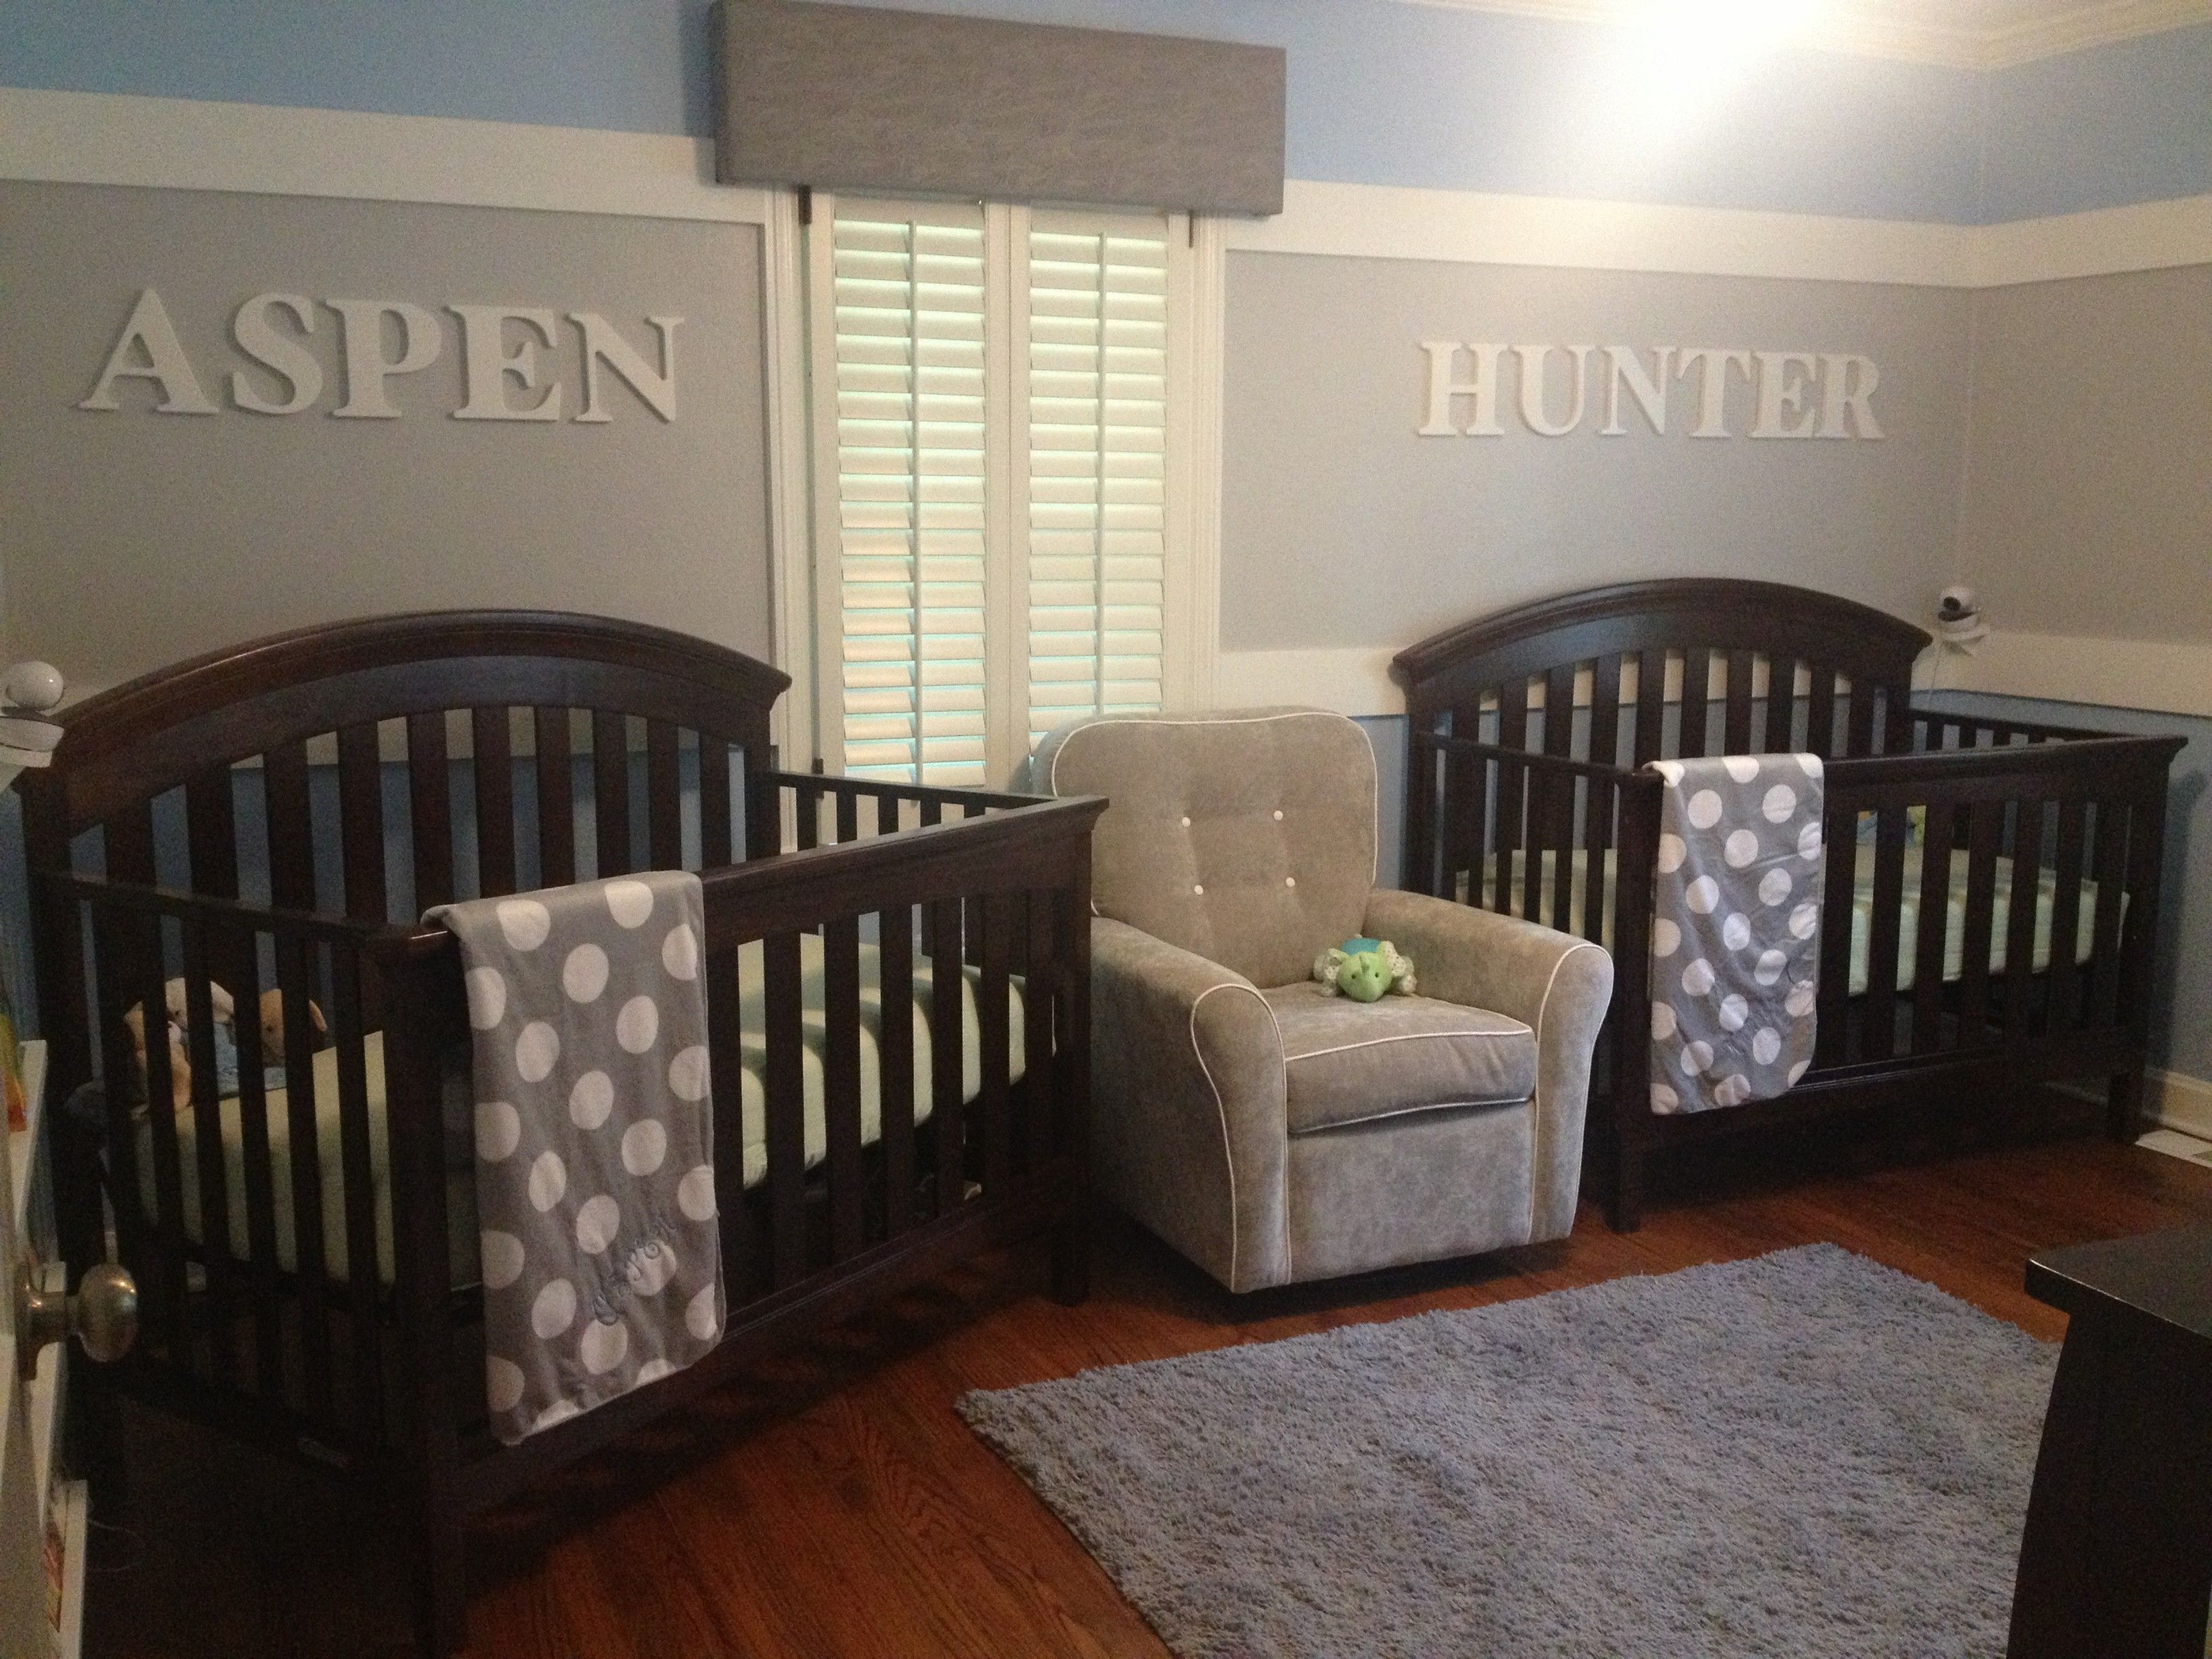 nursery-room-for-twin-boywith-black-wooden-baby-crib-and-gray-f ...